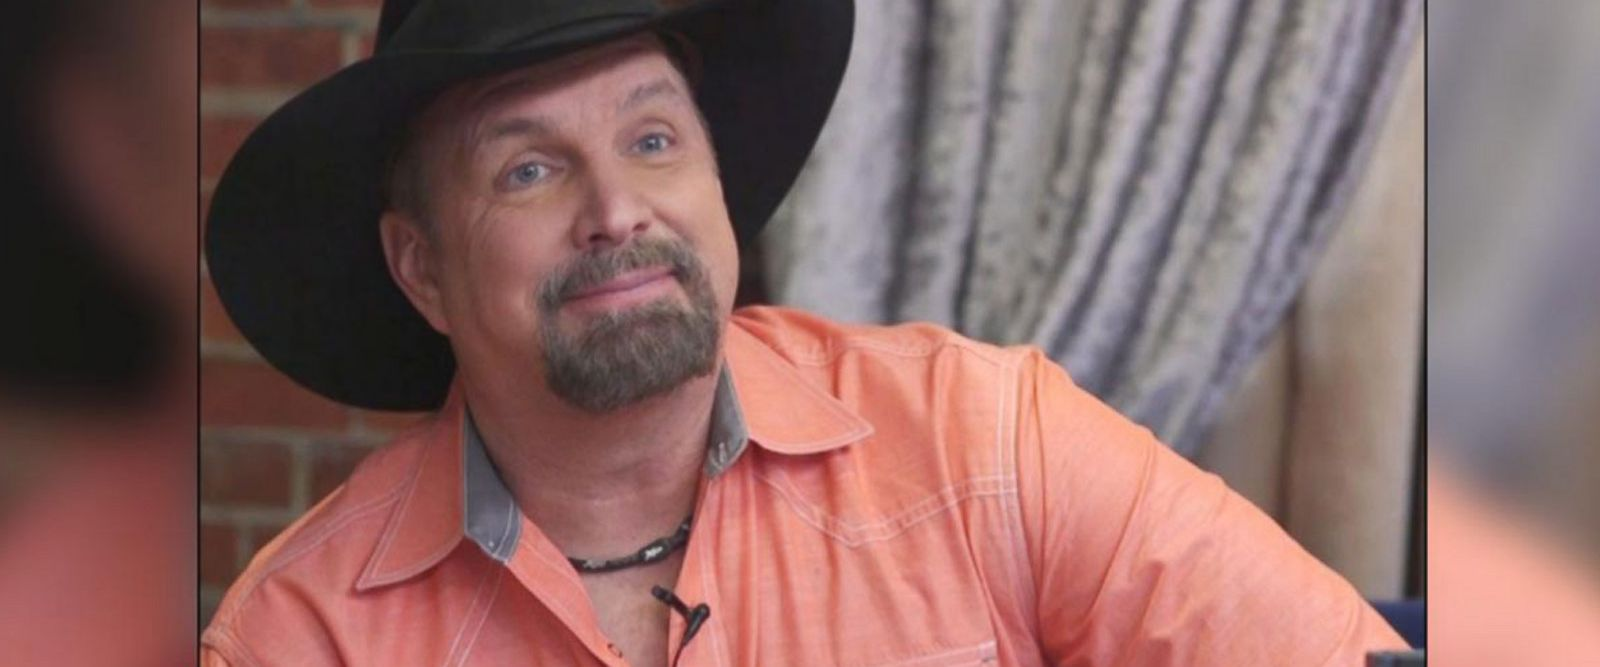 VIDEO: Garth Brooks opens up about why he loves Christmas more than anyone else